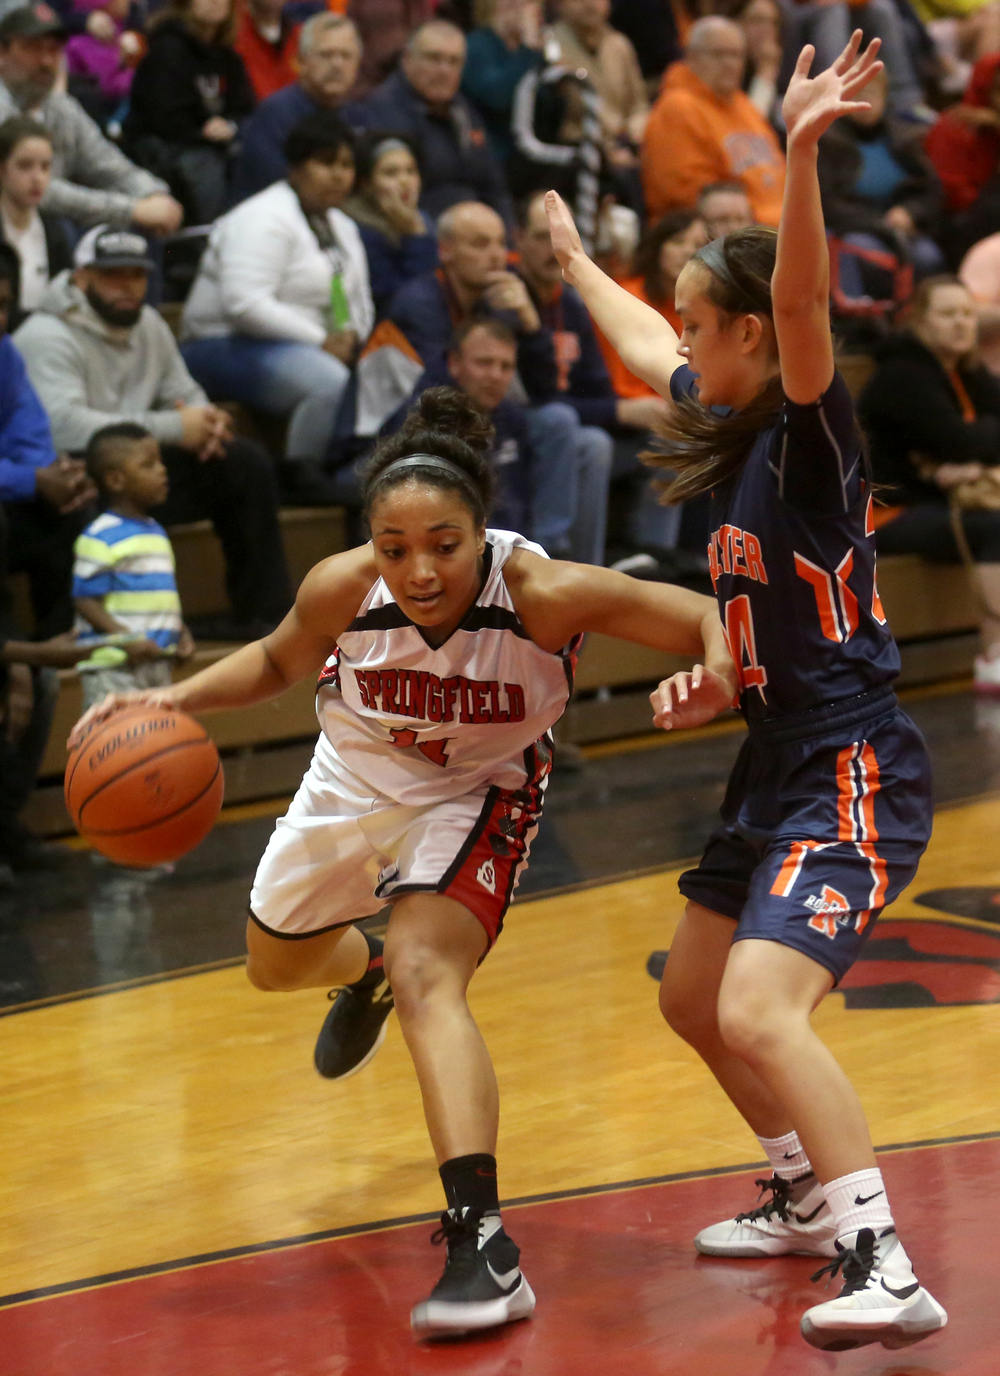 Springfield's Kyra Webster drives around Rochester's Nicole Robinson. David Spencer/The State Journal Register